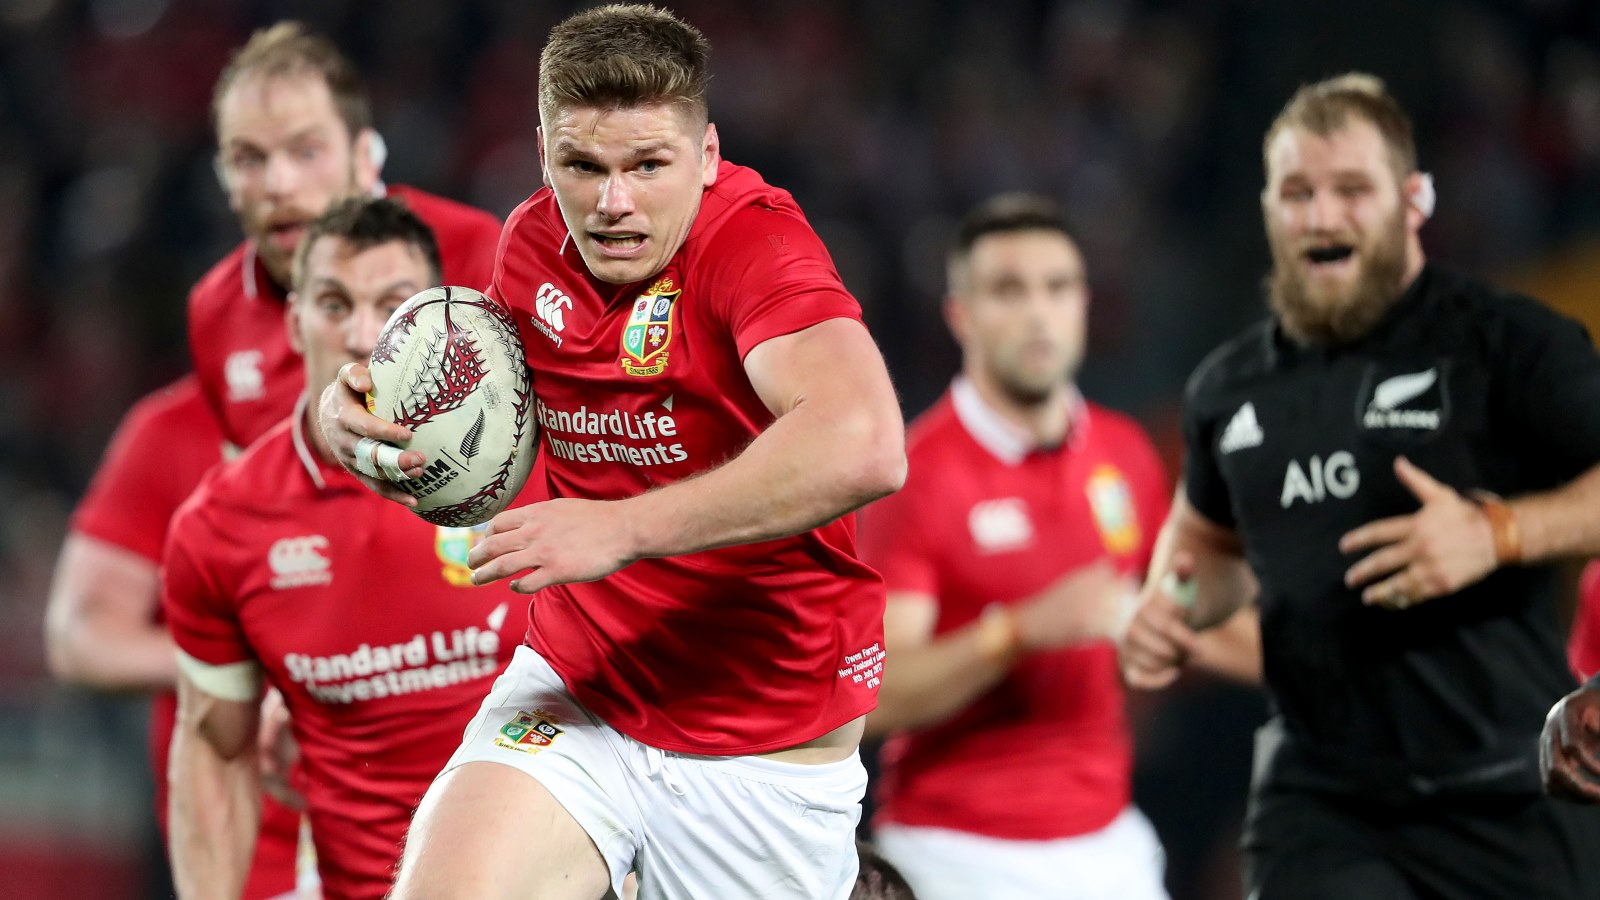 Strong Lions contingent selected in England's Six Nations squad